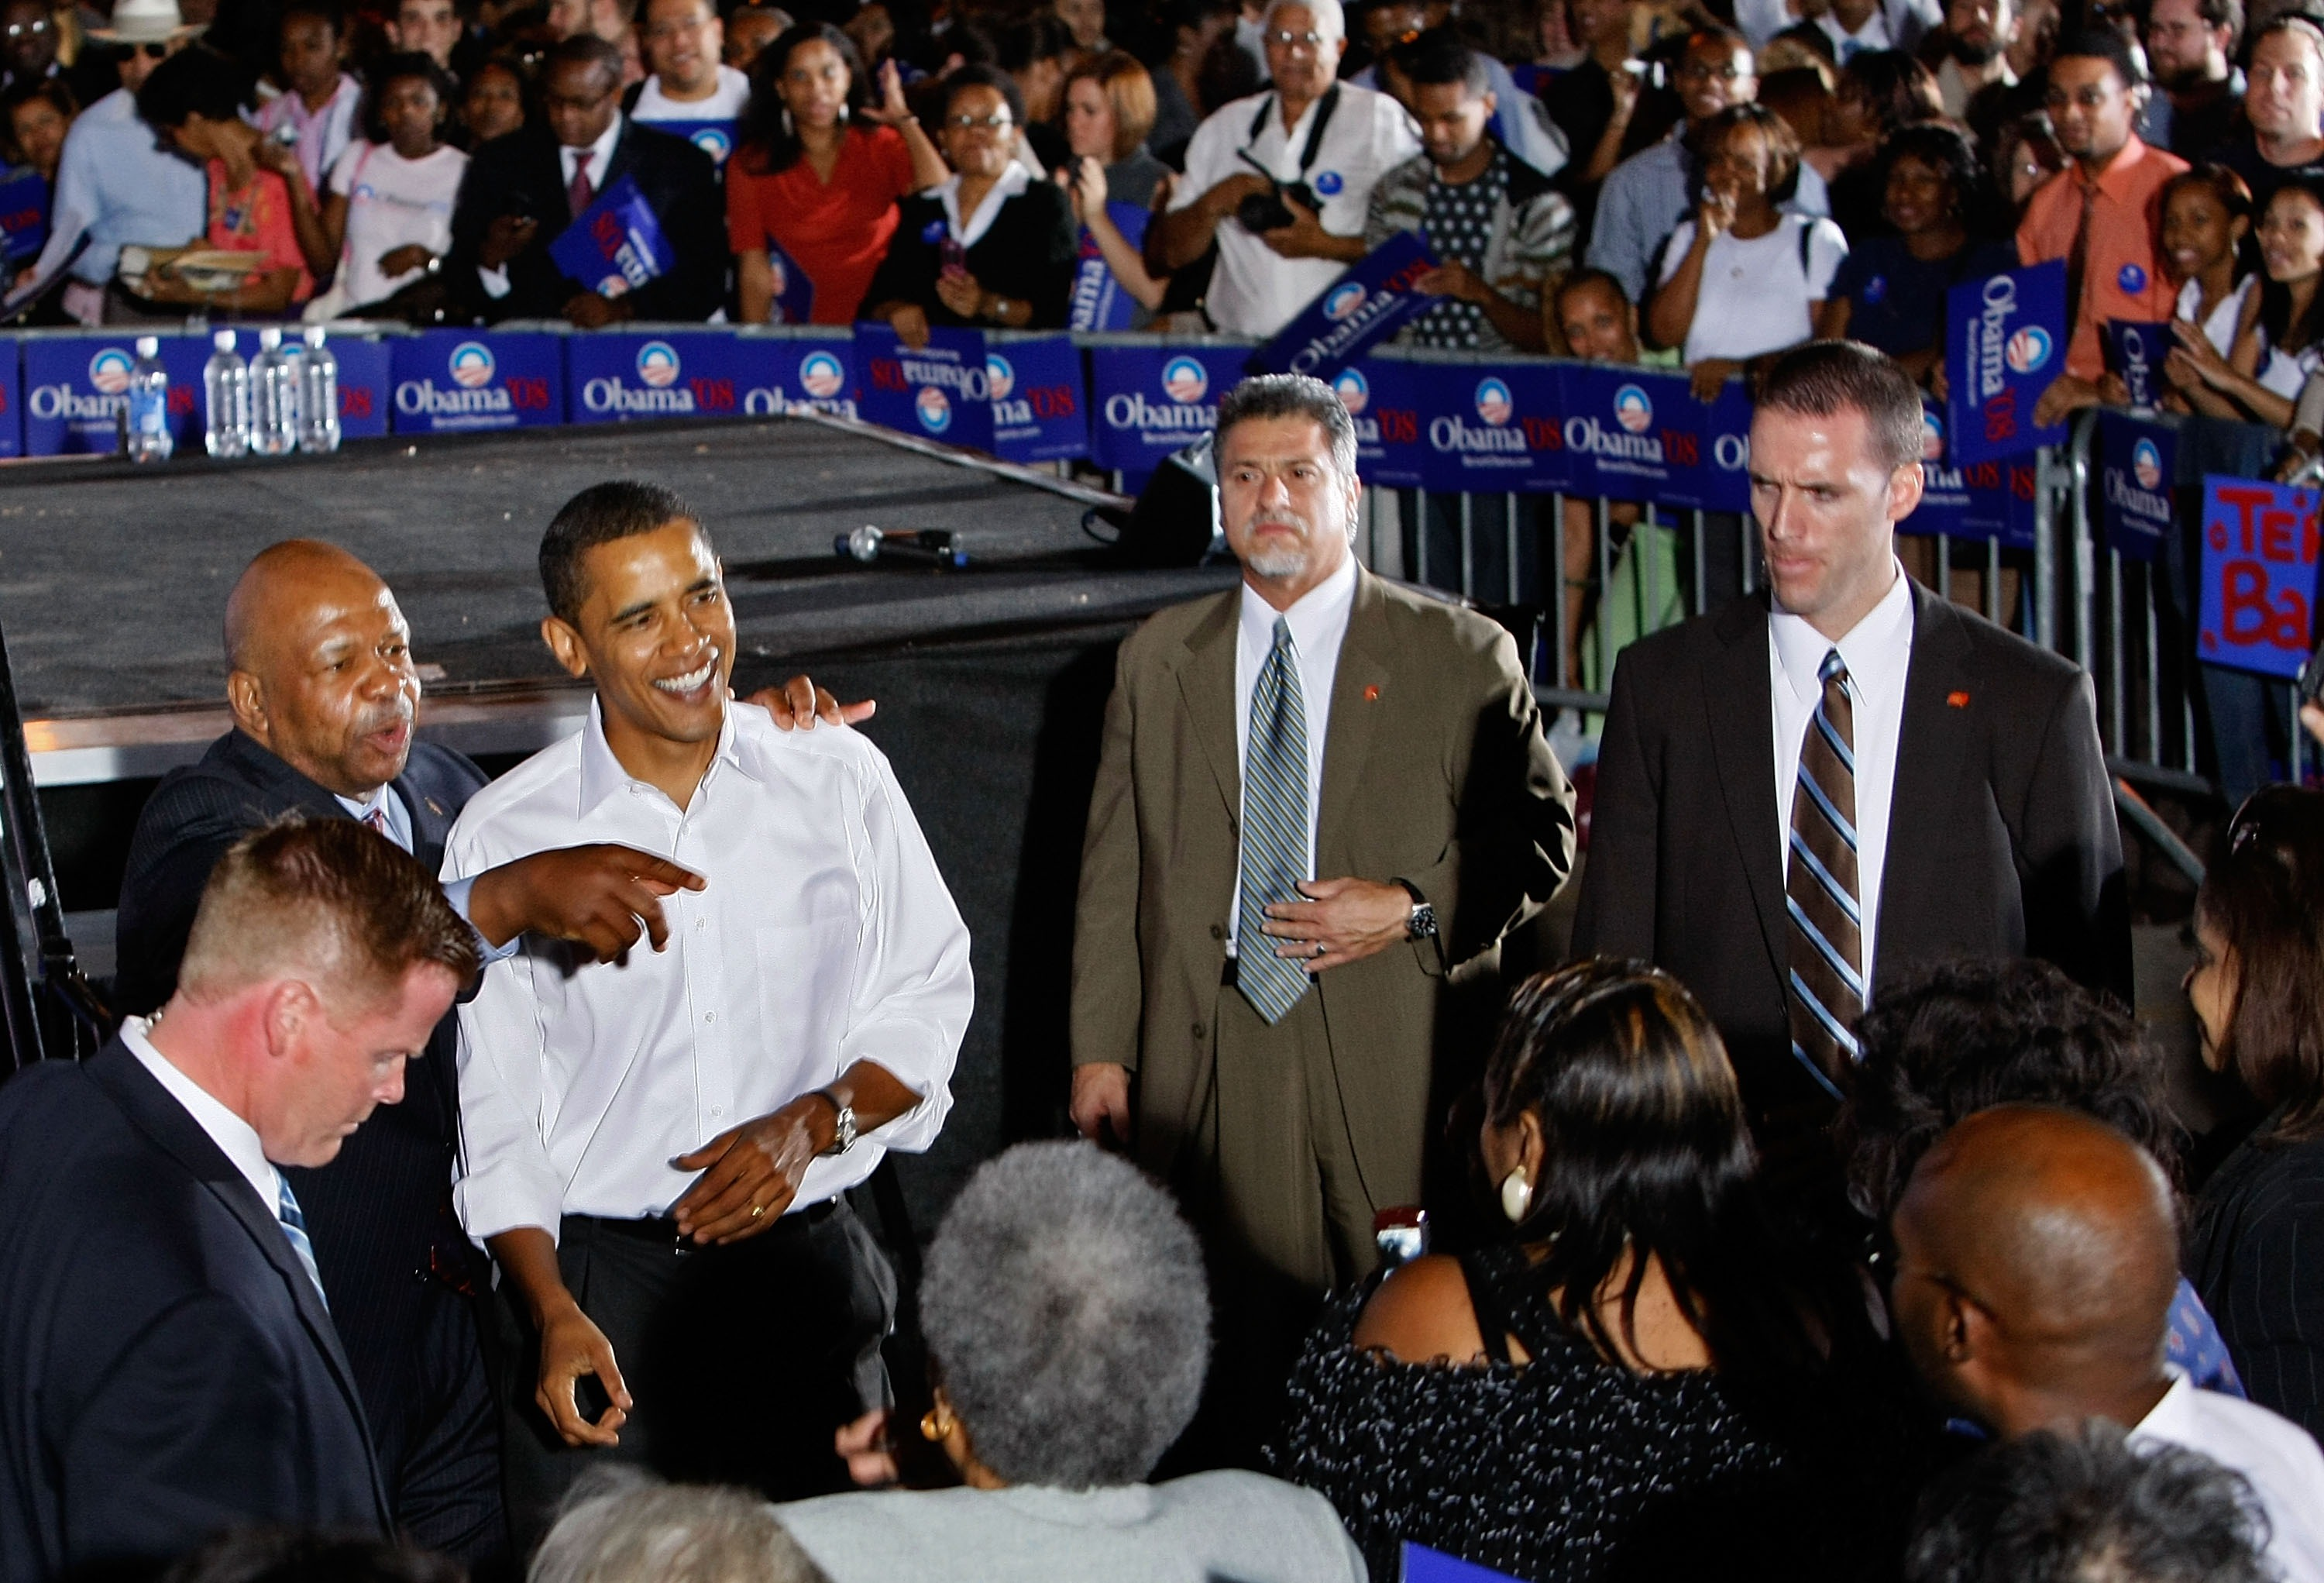 Surrounded by members of the Secret Service, Rep. Elijah Cummings points to the crowd alongside then-presidential hopeful Sen. Barack Obama at a 2007 rally.